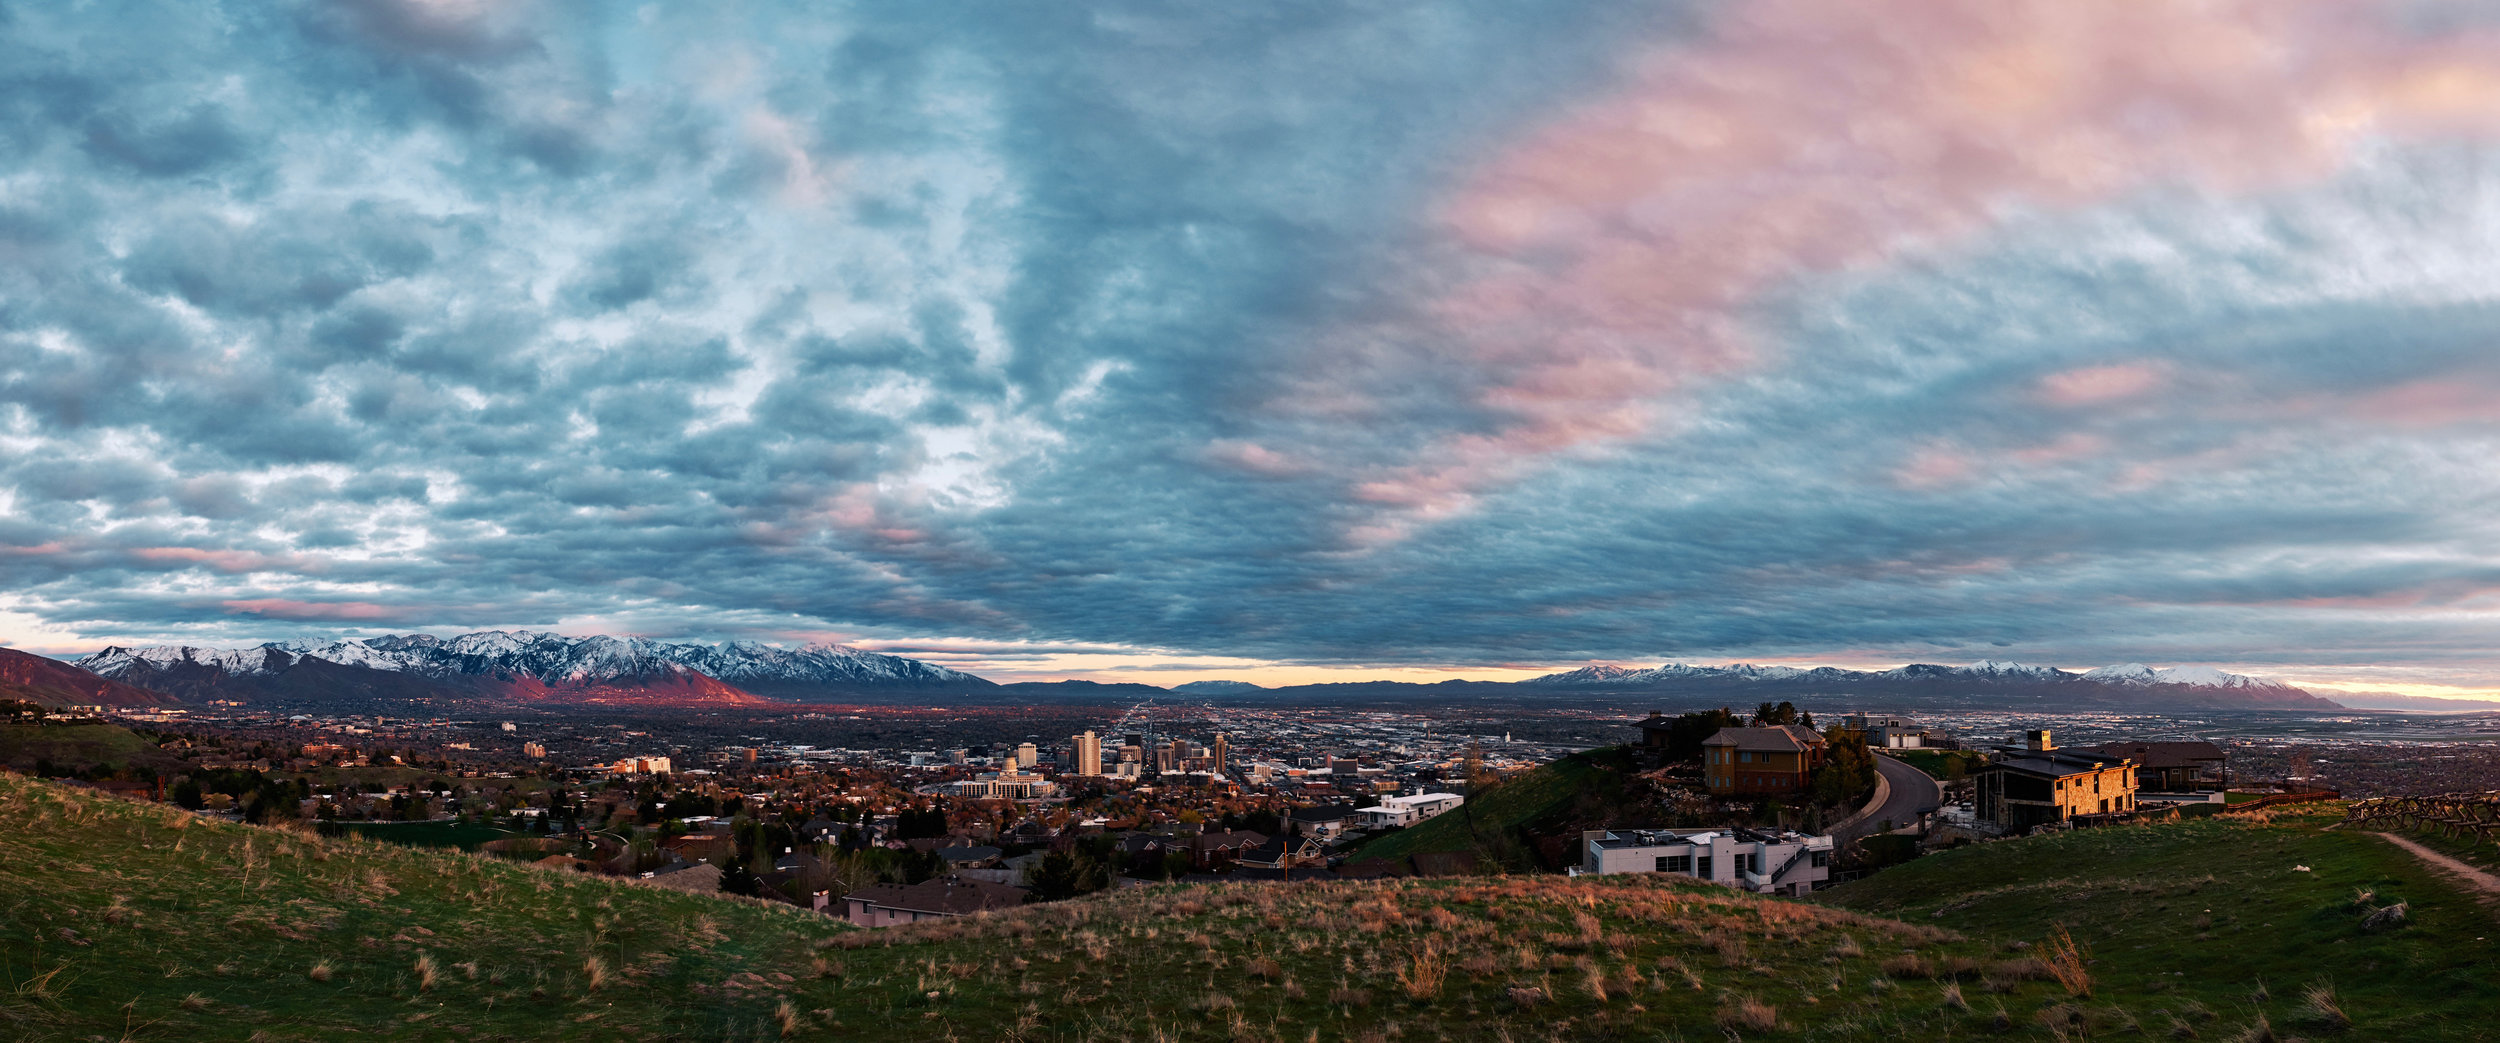 Salt Lake City - 16.jpg